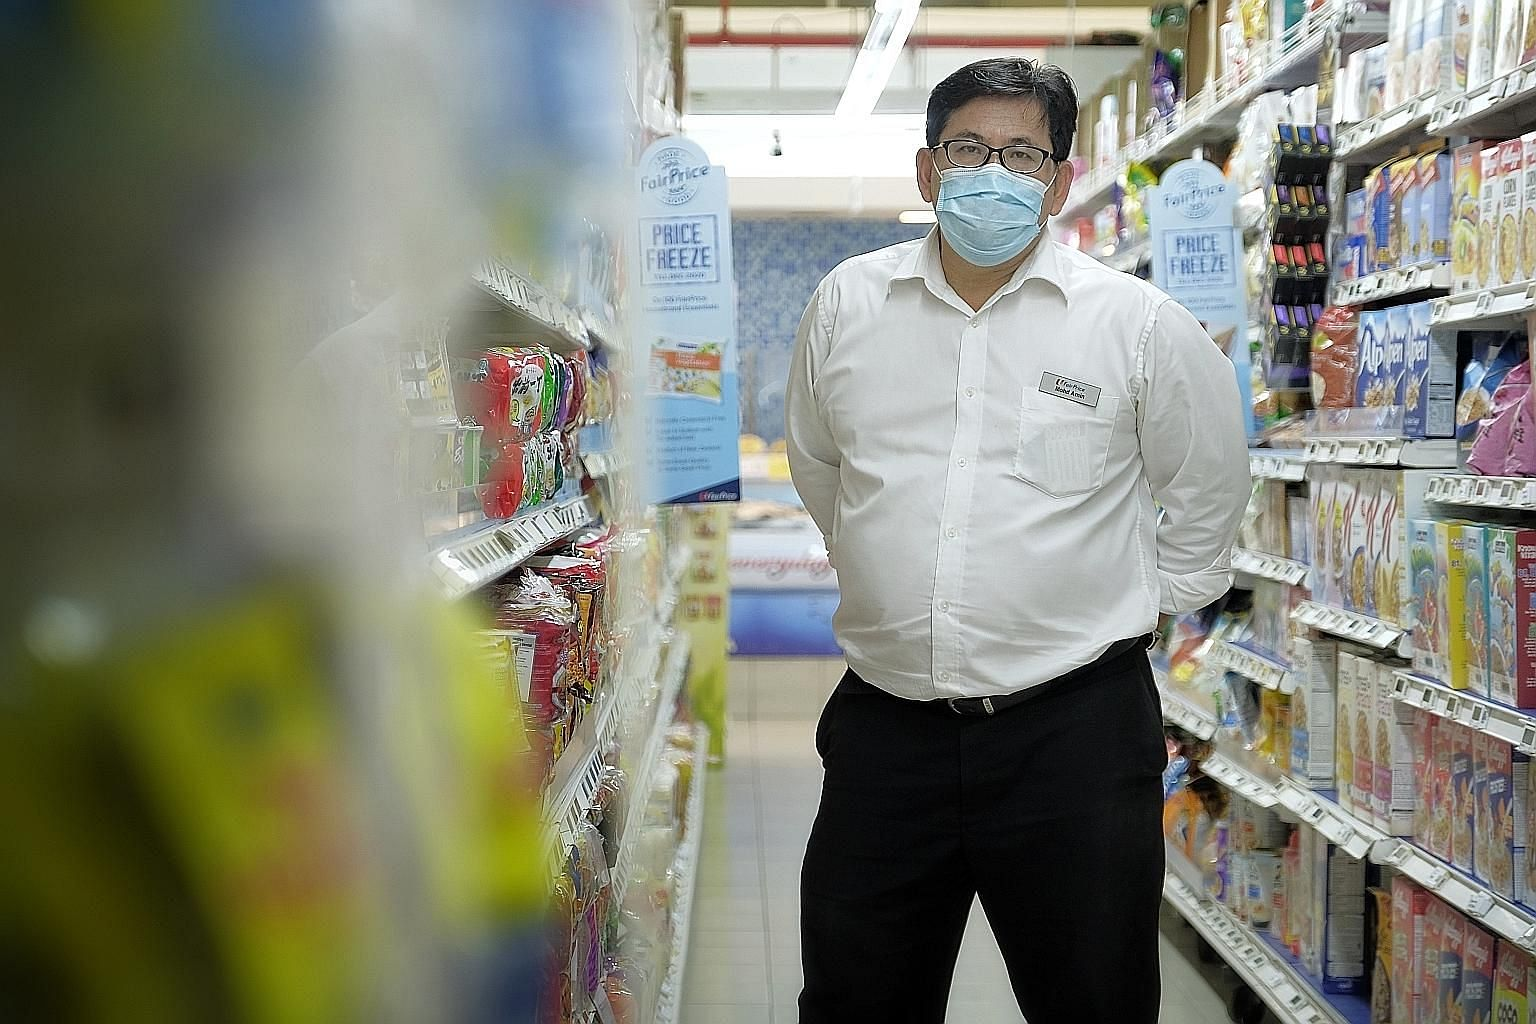 FairPrice branch manager Mohamed Amin manages a team of over 50 people at the Block 135 Jurong Gateway Road outlet. The team has put in longer hours to serve a larger volume of customers amid the pandemic.